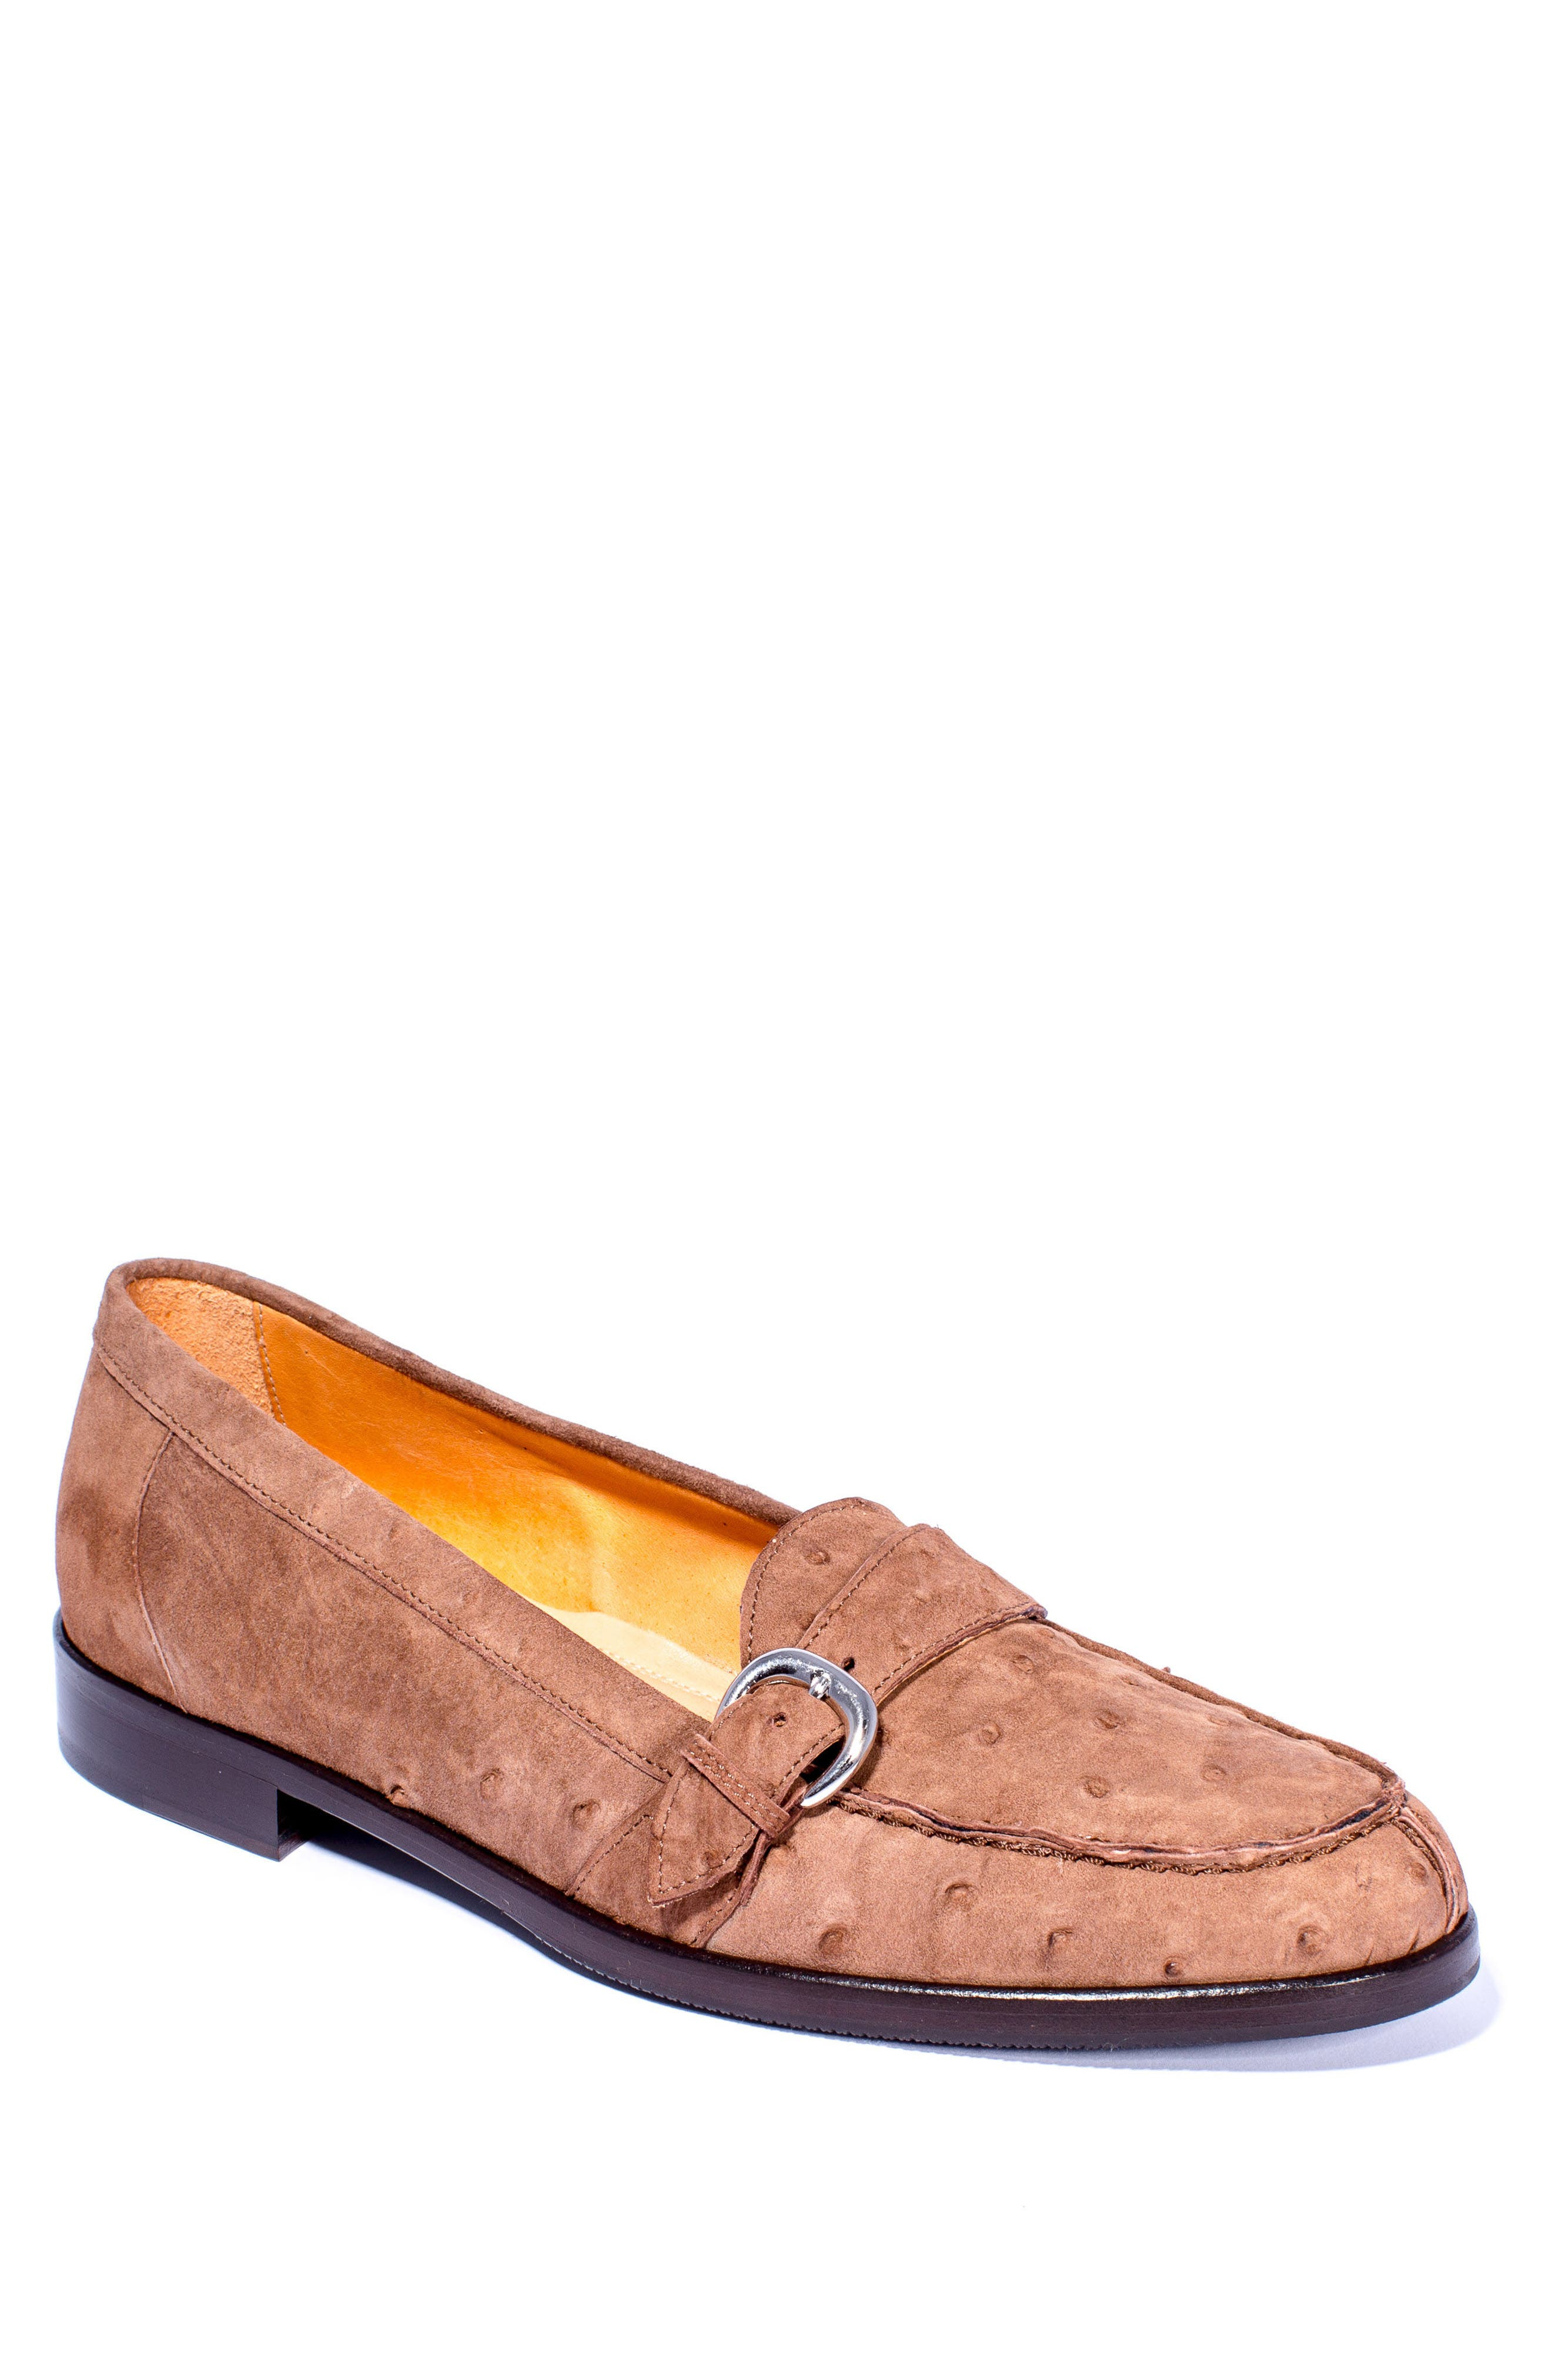 Orlando Teju Ostrich Loafer,                             Main thumbnail 1, color,                             Brown